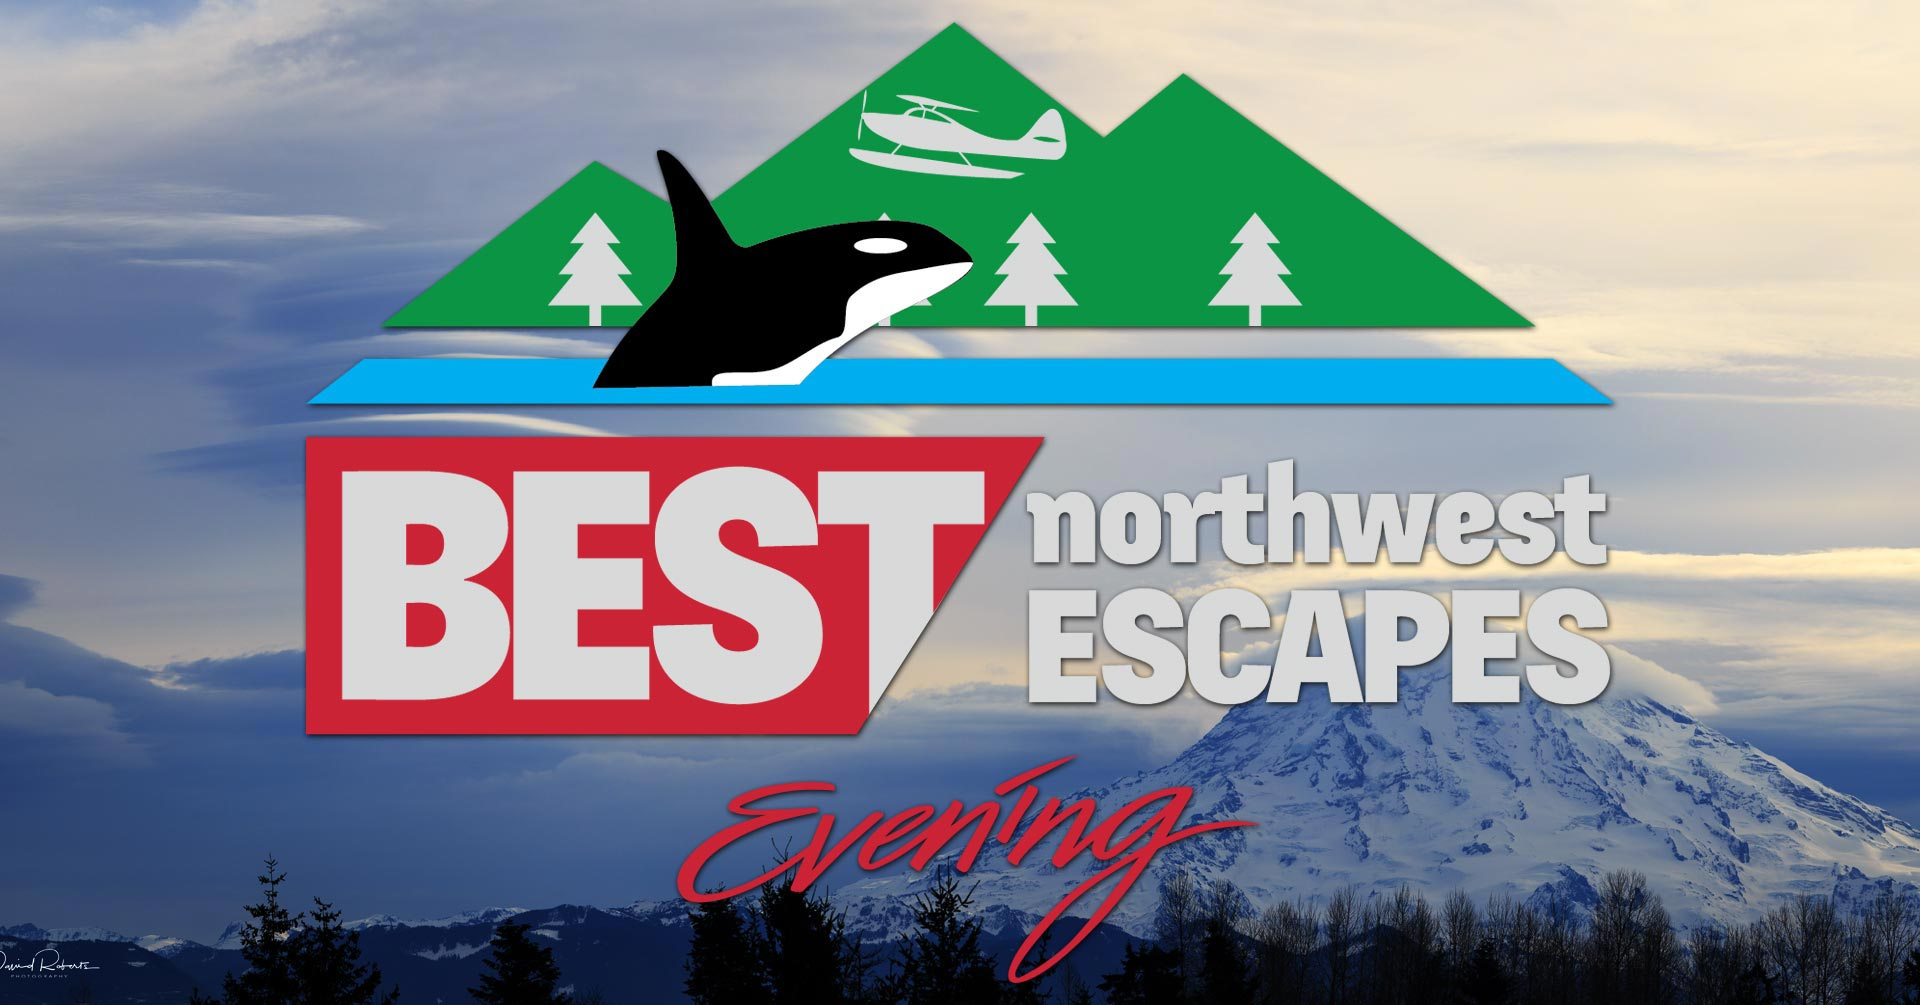 Best Northwest Escapes